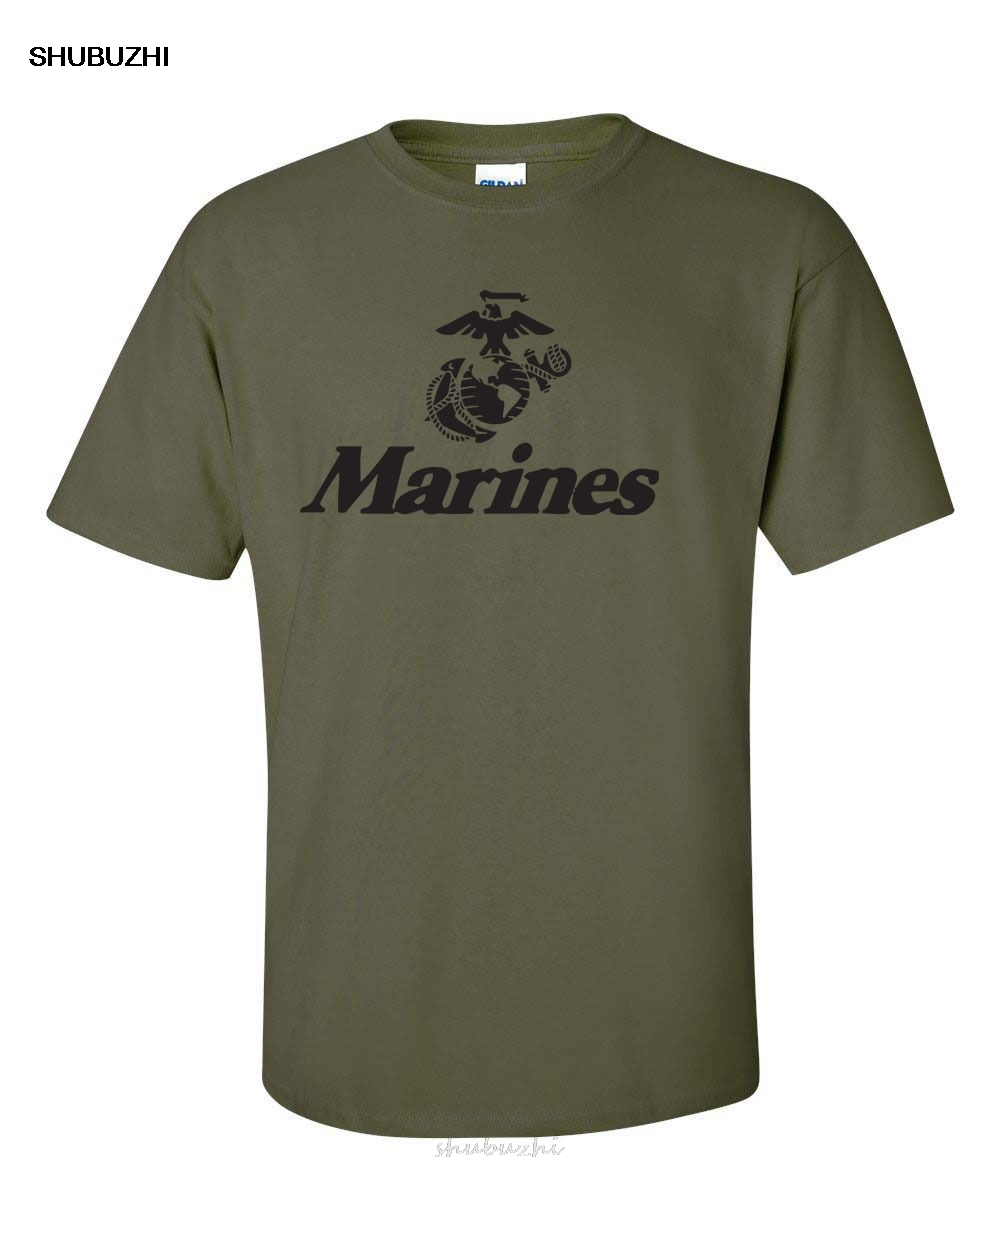 Fashion Cotton <font><b>T</b></font>-<font><b>shirt</b></font> Marine Corps U.S. United States Marines <font><b>USMC</b></font> Military Men's Tee <font><b>Shirt</b></font> image